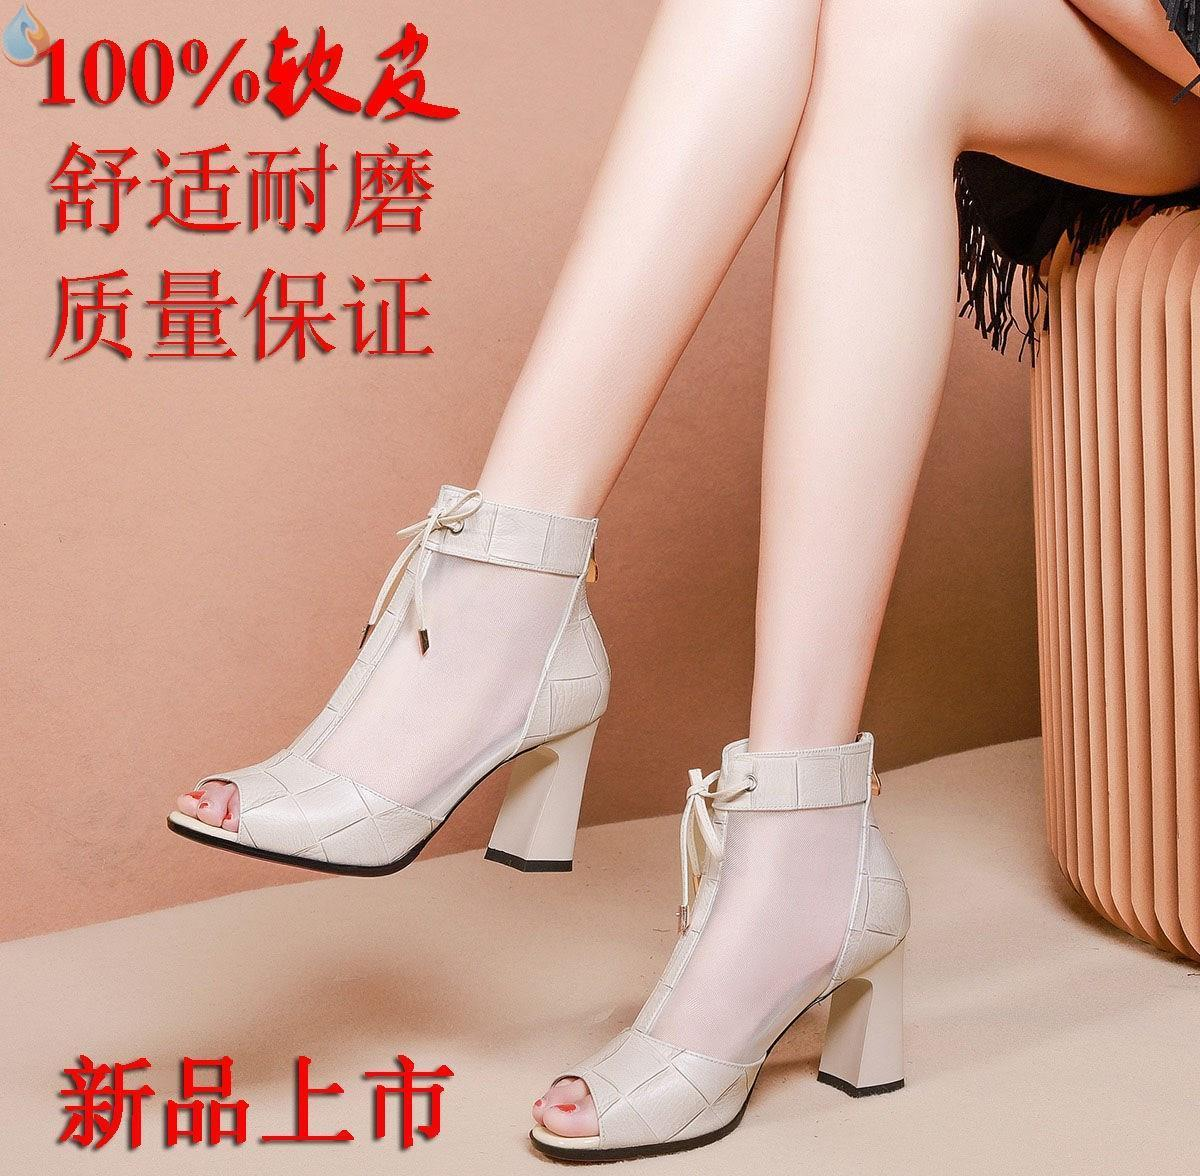 ? New style shoes pointed womens boots mesh yarn 2020 spring and summer sandals net boots womens thick heels high top short boots high heels cool